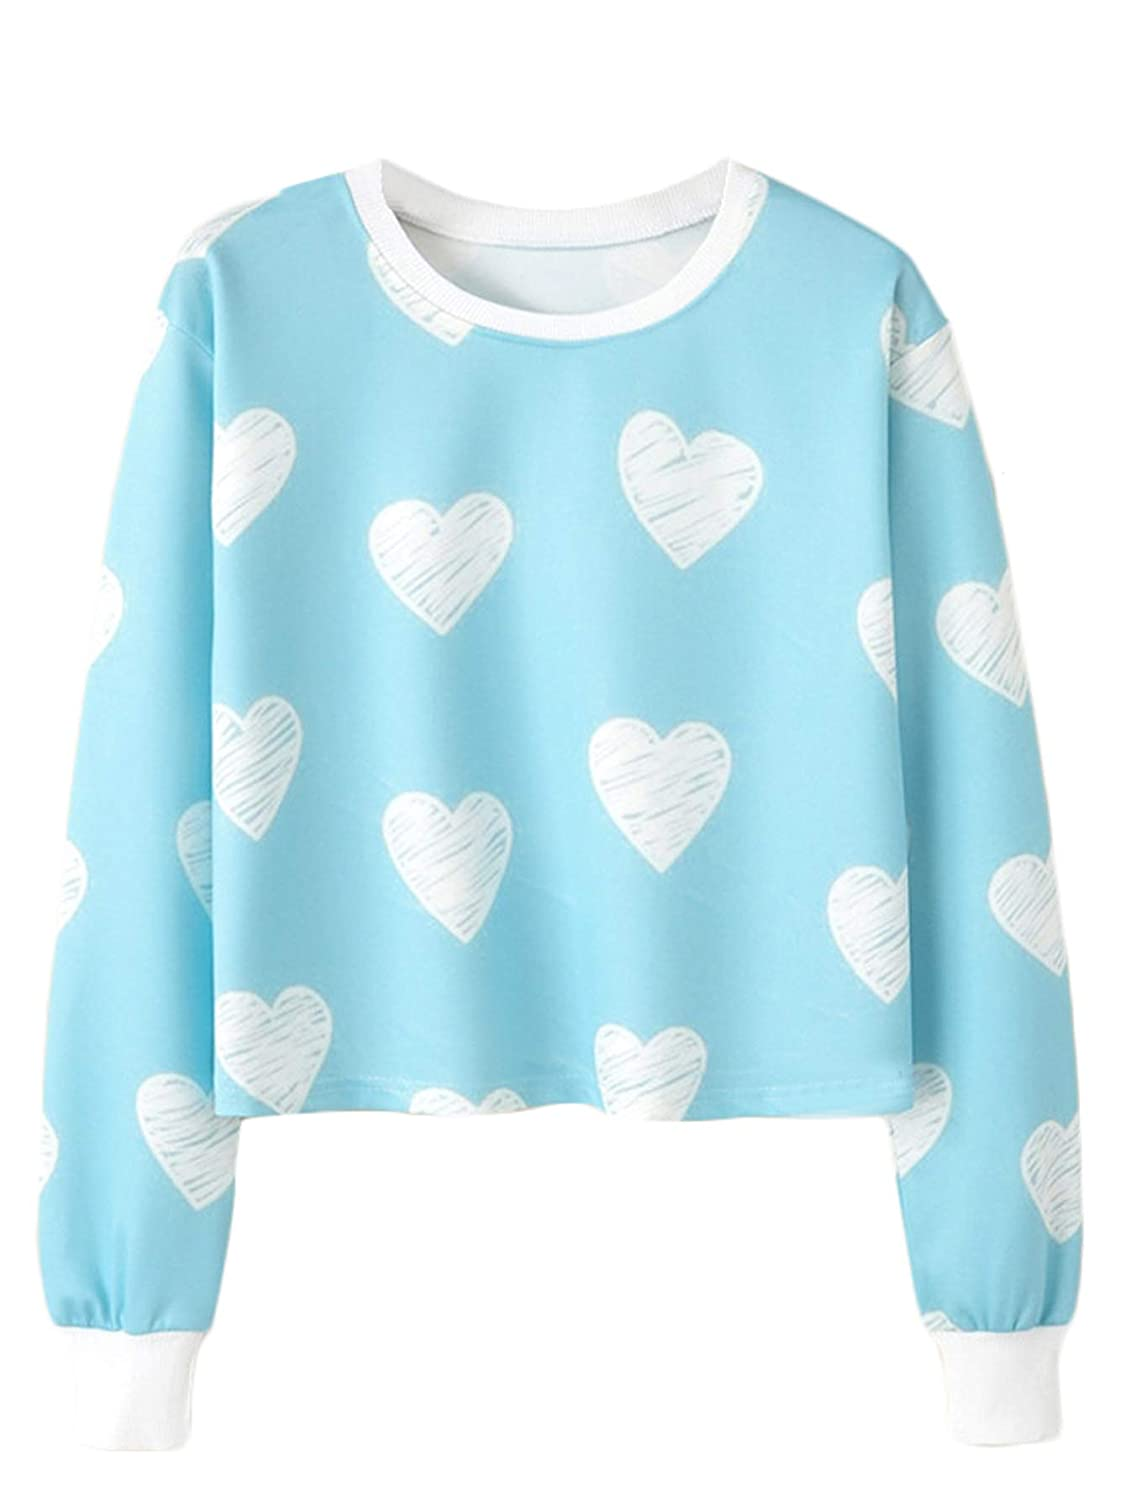 Heart Print SOLY HUX Women's Casual Printing Long Sleeve Round Neck Crop Top Sweatshirt